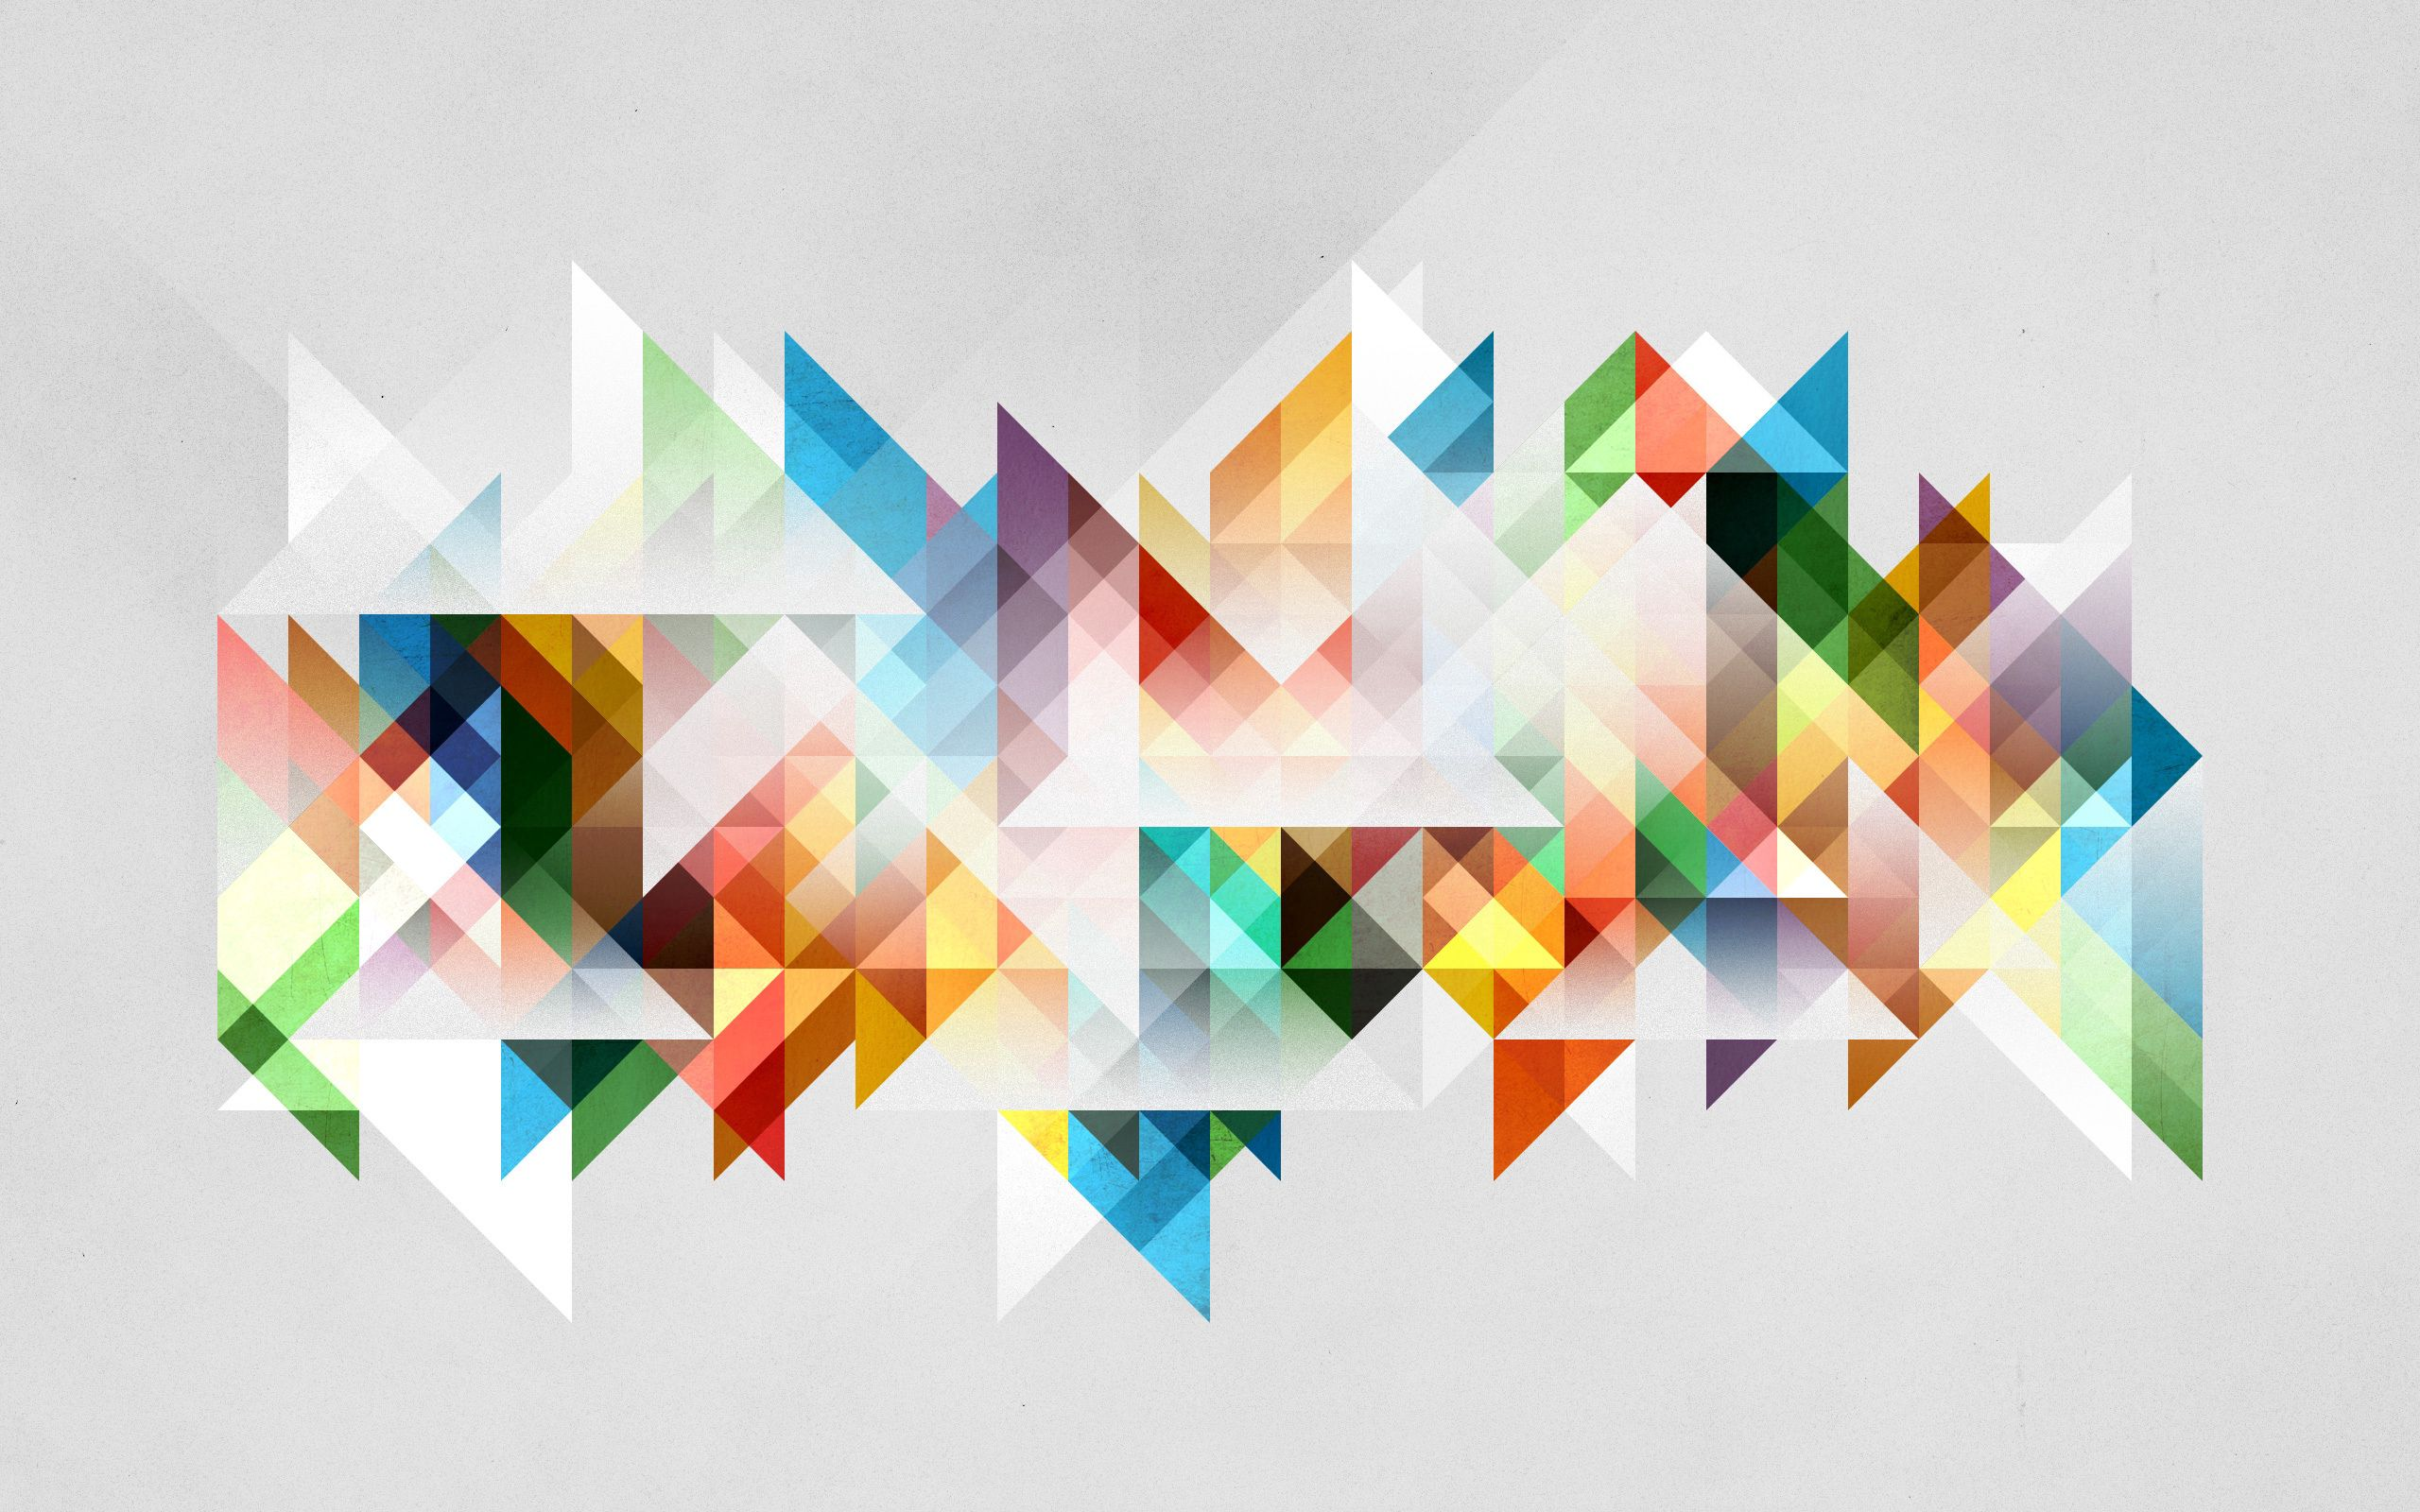 74262 download wallpaper Abstract, Geometry, Shapes, Shape, Colors, Color screensavers and pictures for free